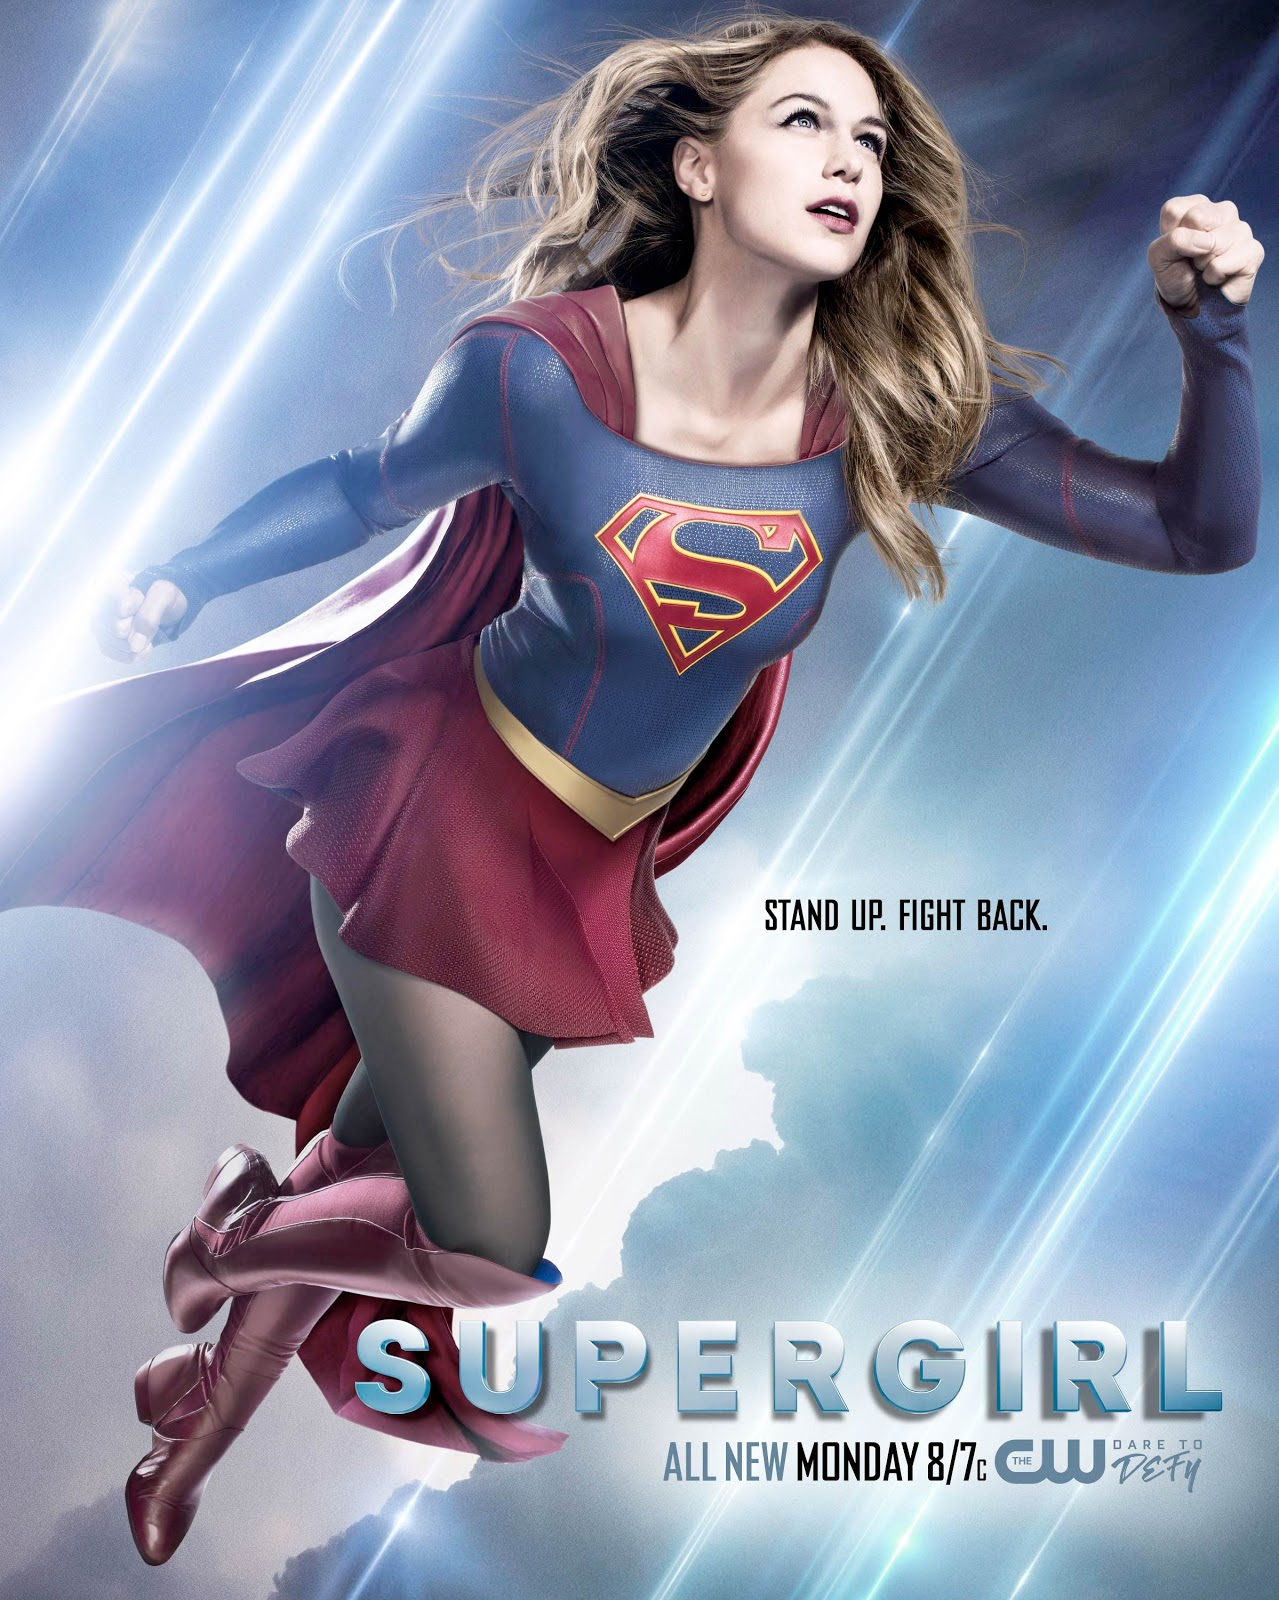 Supergirl 2x21 Resist poster